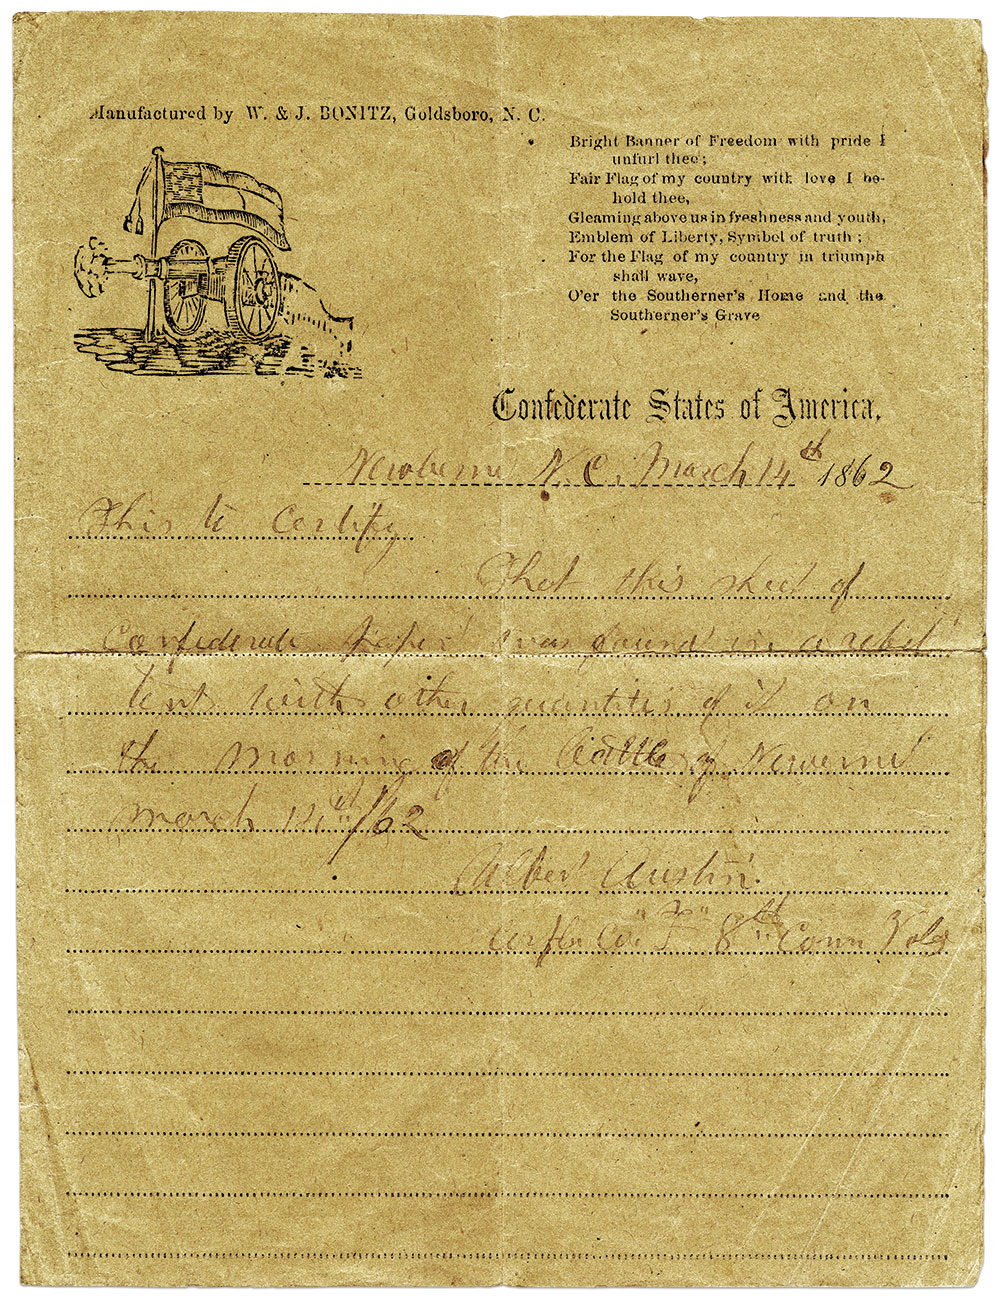 Austin's captured Confederate stationary printed by W. & J. Bonitz of Goldsboro, N.C. Most of the Bonitz covers and letter sheets were produced on poor quality brown paper, which would appear in stark contrast to better quality paper produced by Northern paper mills and some early war Southern mills. Ron Field Collection.